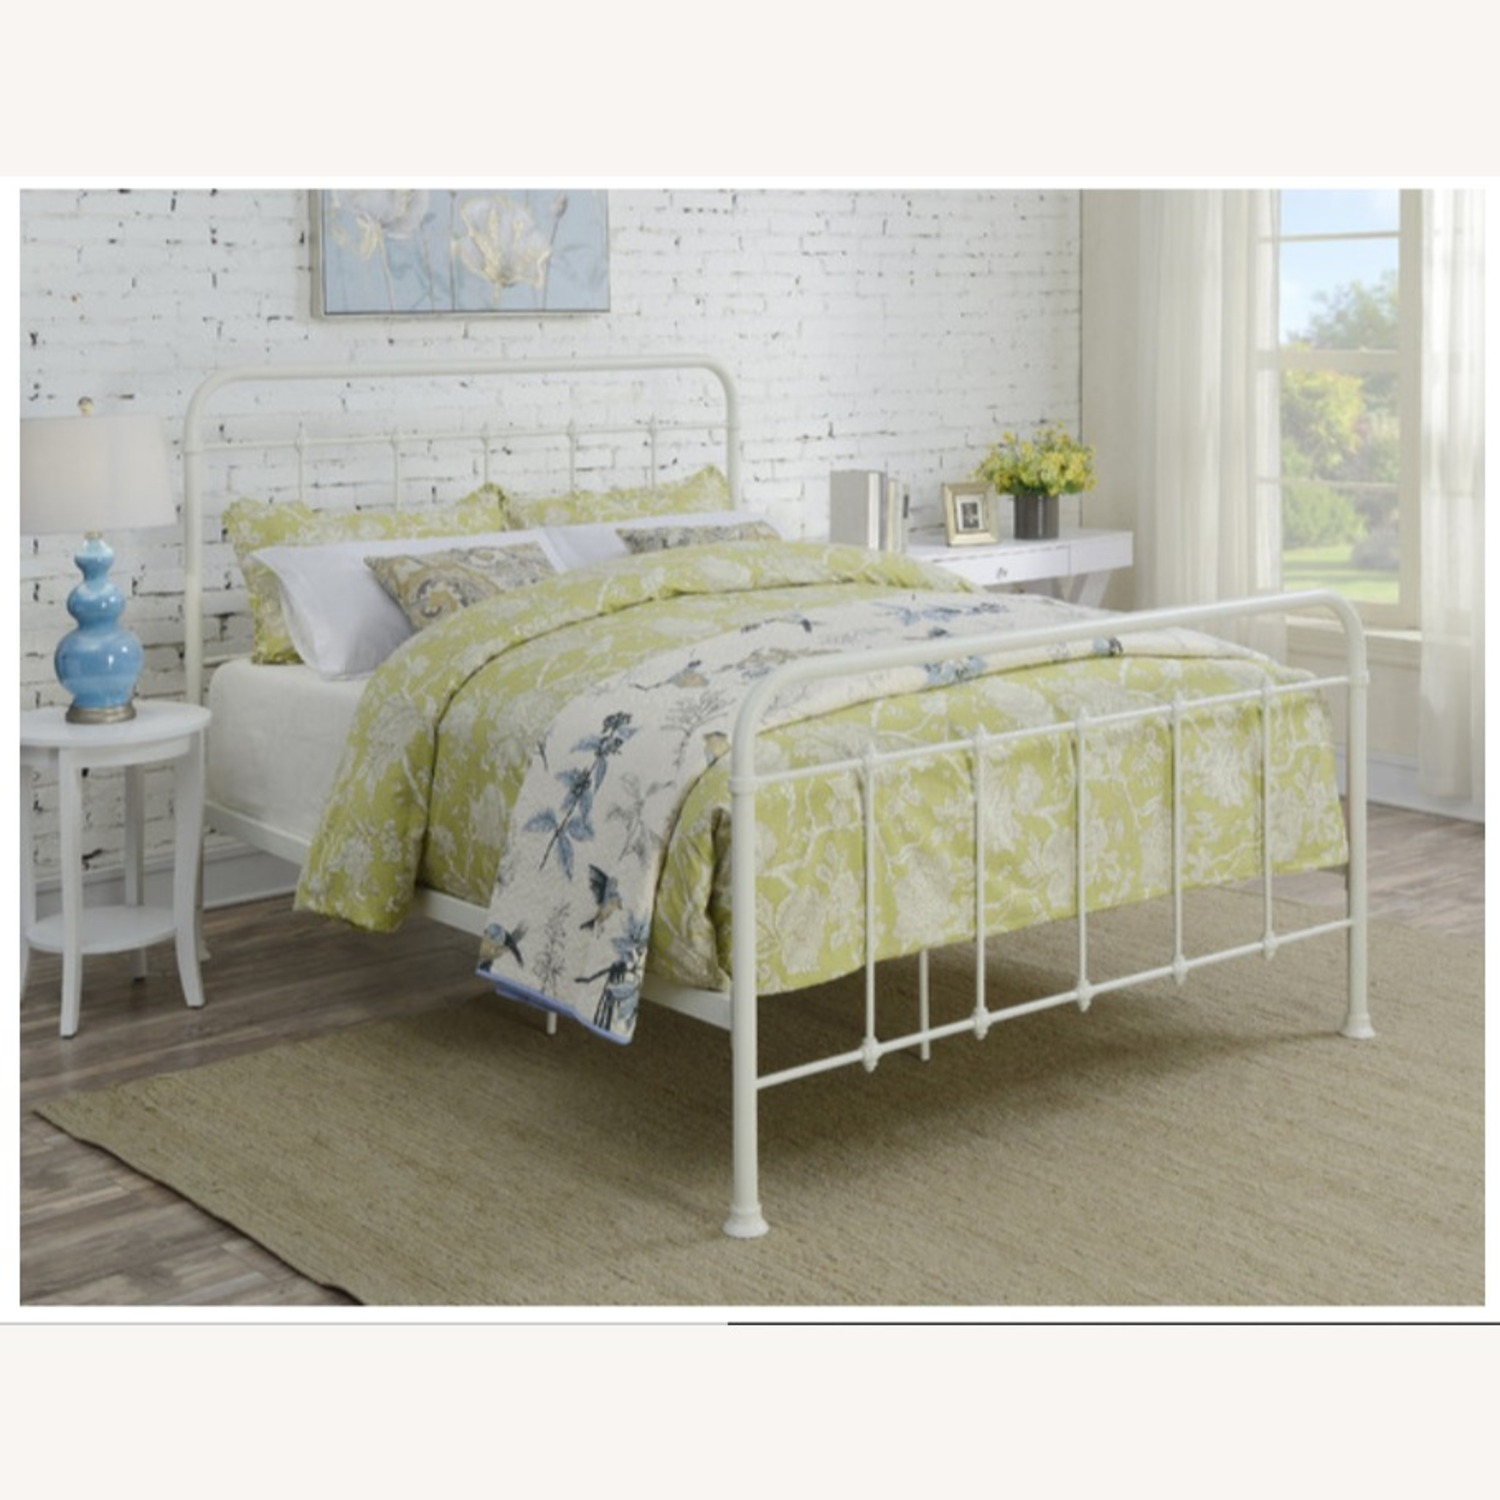 Pulaski All-in-One Curved Queen Metal Bed, White - image-3